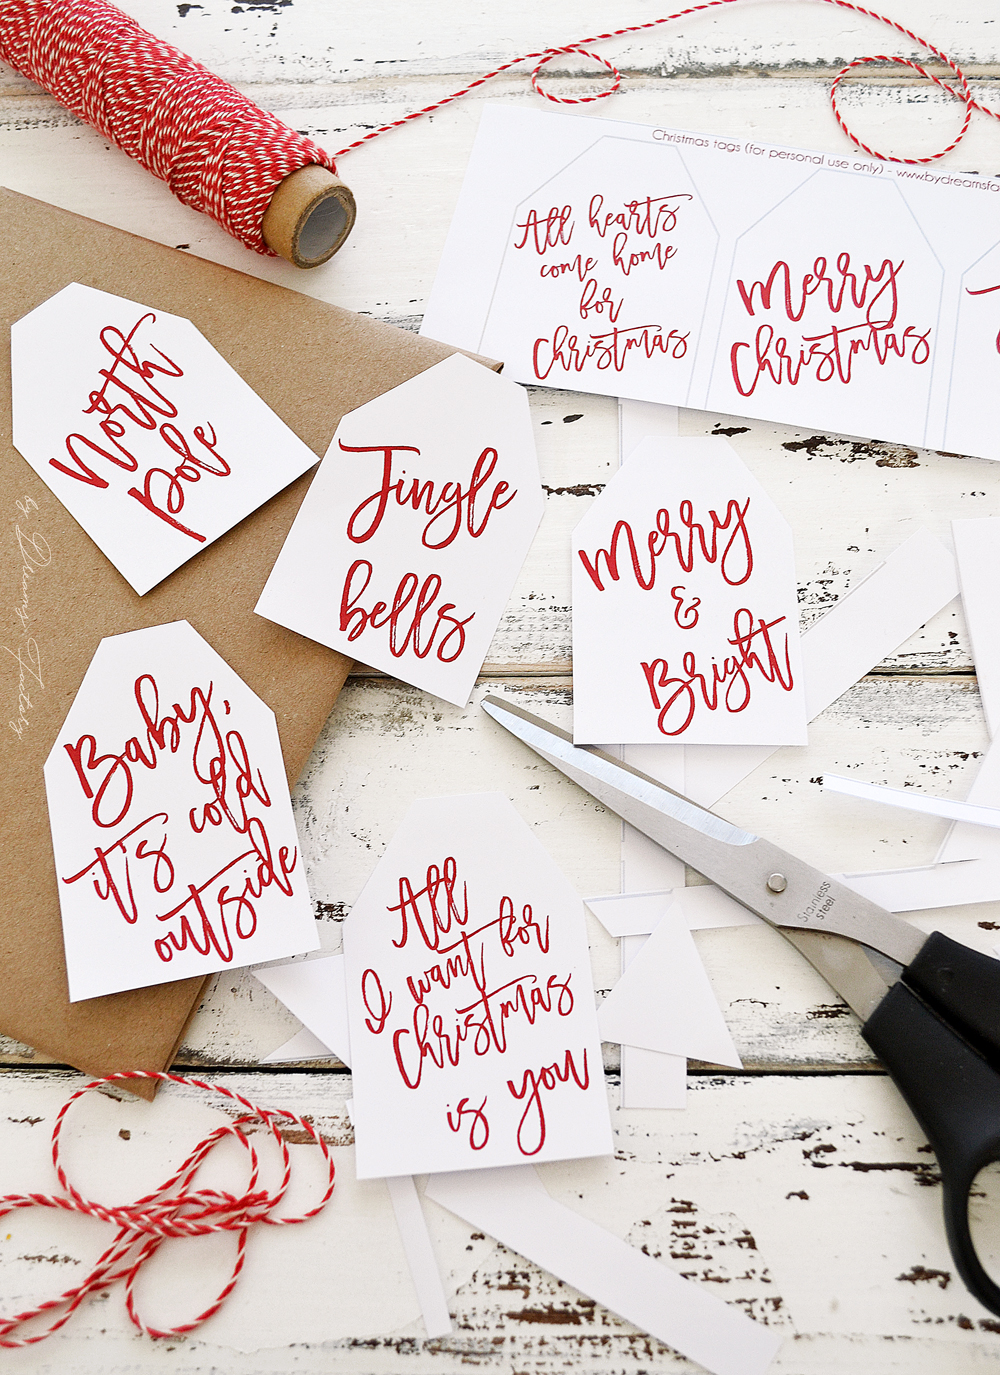 Free printable Christmas gift tags - a simple but beautiful last minute touch you need to add to your Christmas presents this year   by Dreams Factory @bydreamsfactory